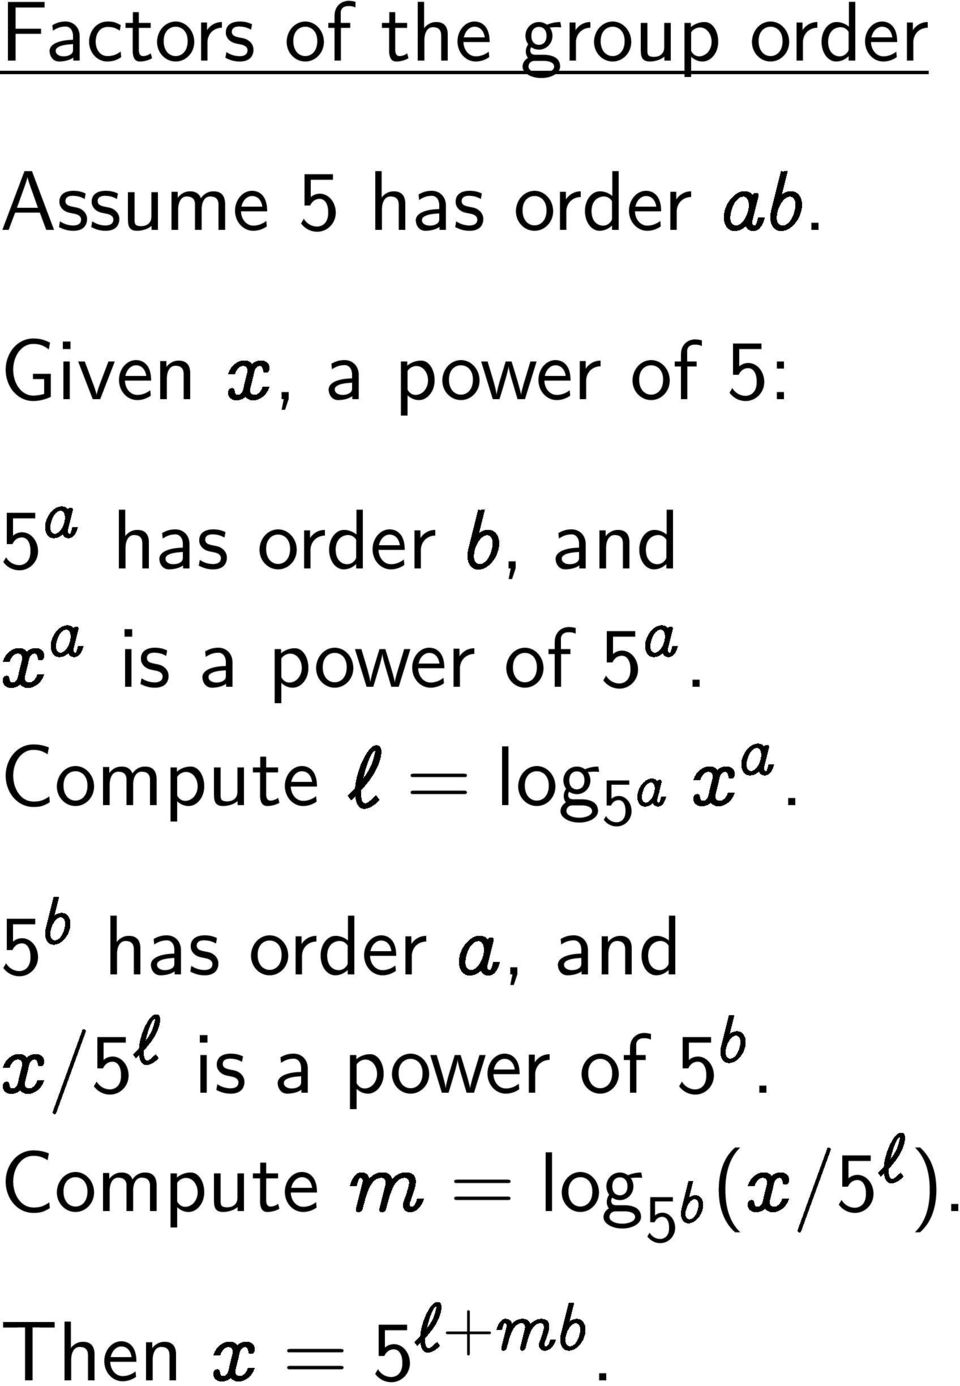 power of 5. Compute = log 5 Ü.